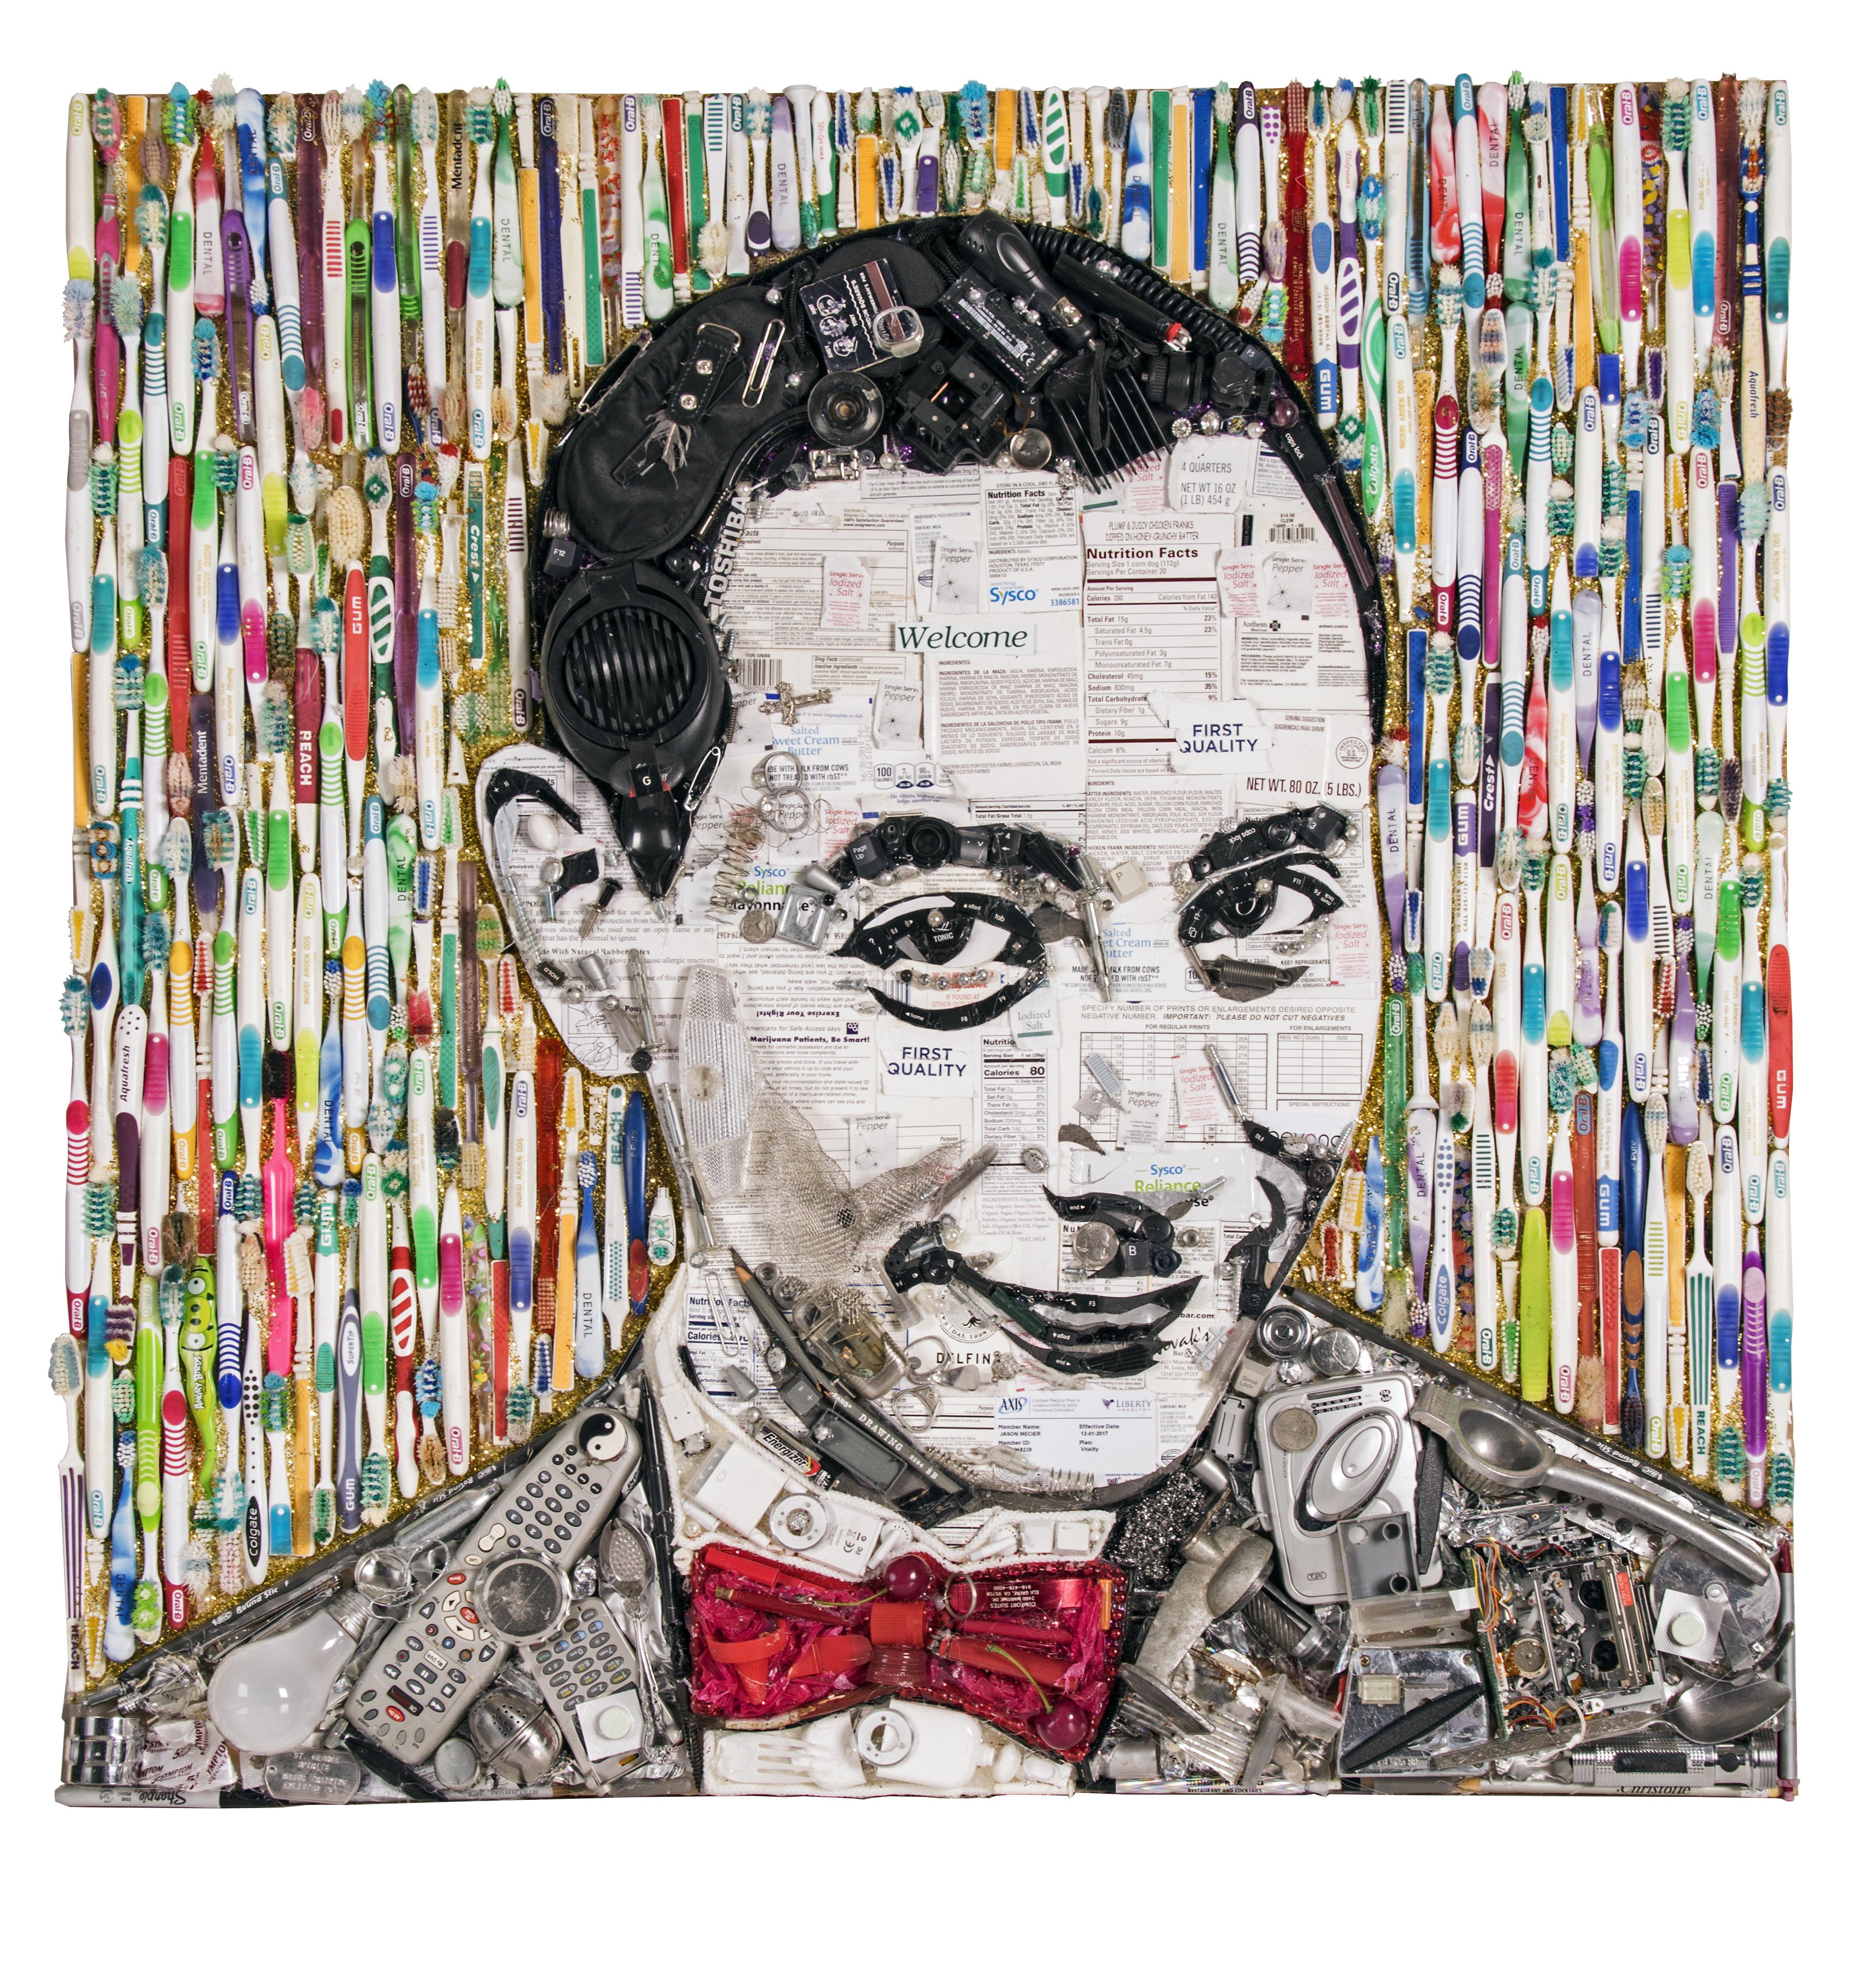 This portrait of Pee-wee Herman is made with old toothbrushes, light bulbs,  and other junk